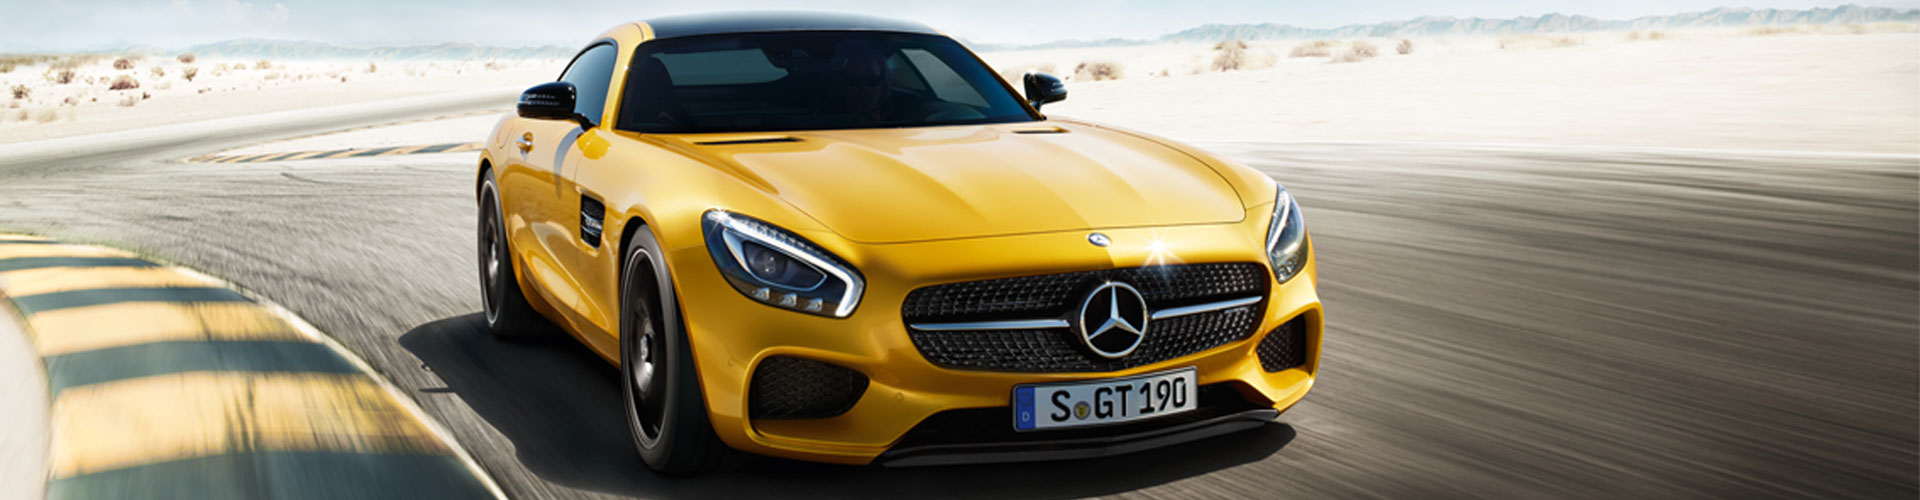 Mercedes-Benz GT AMG in gelb